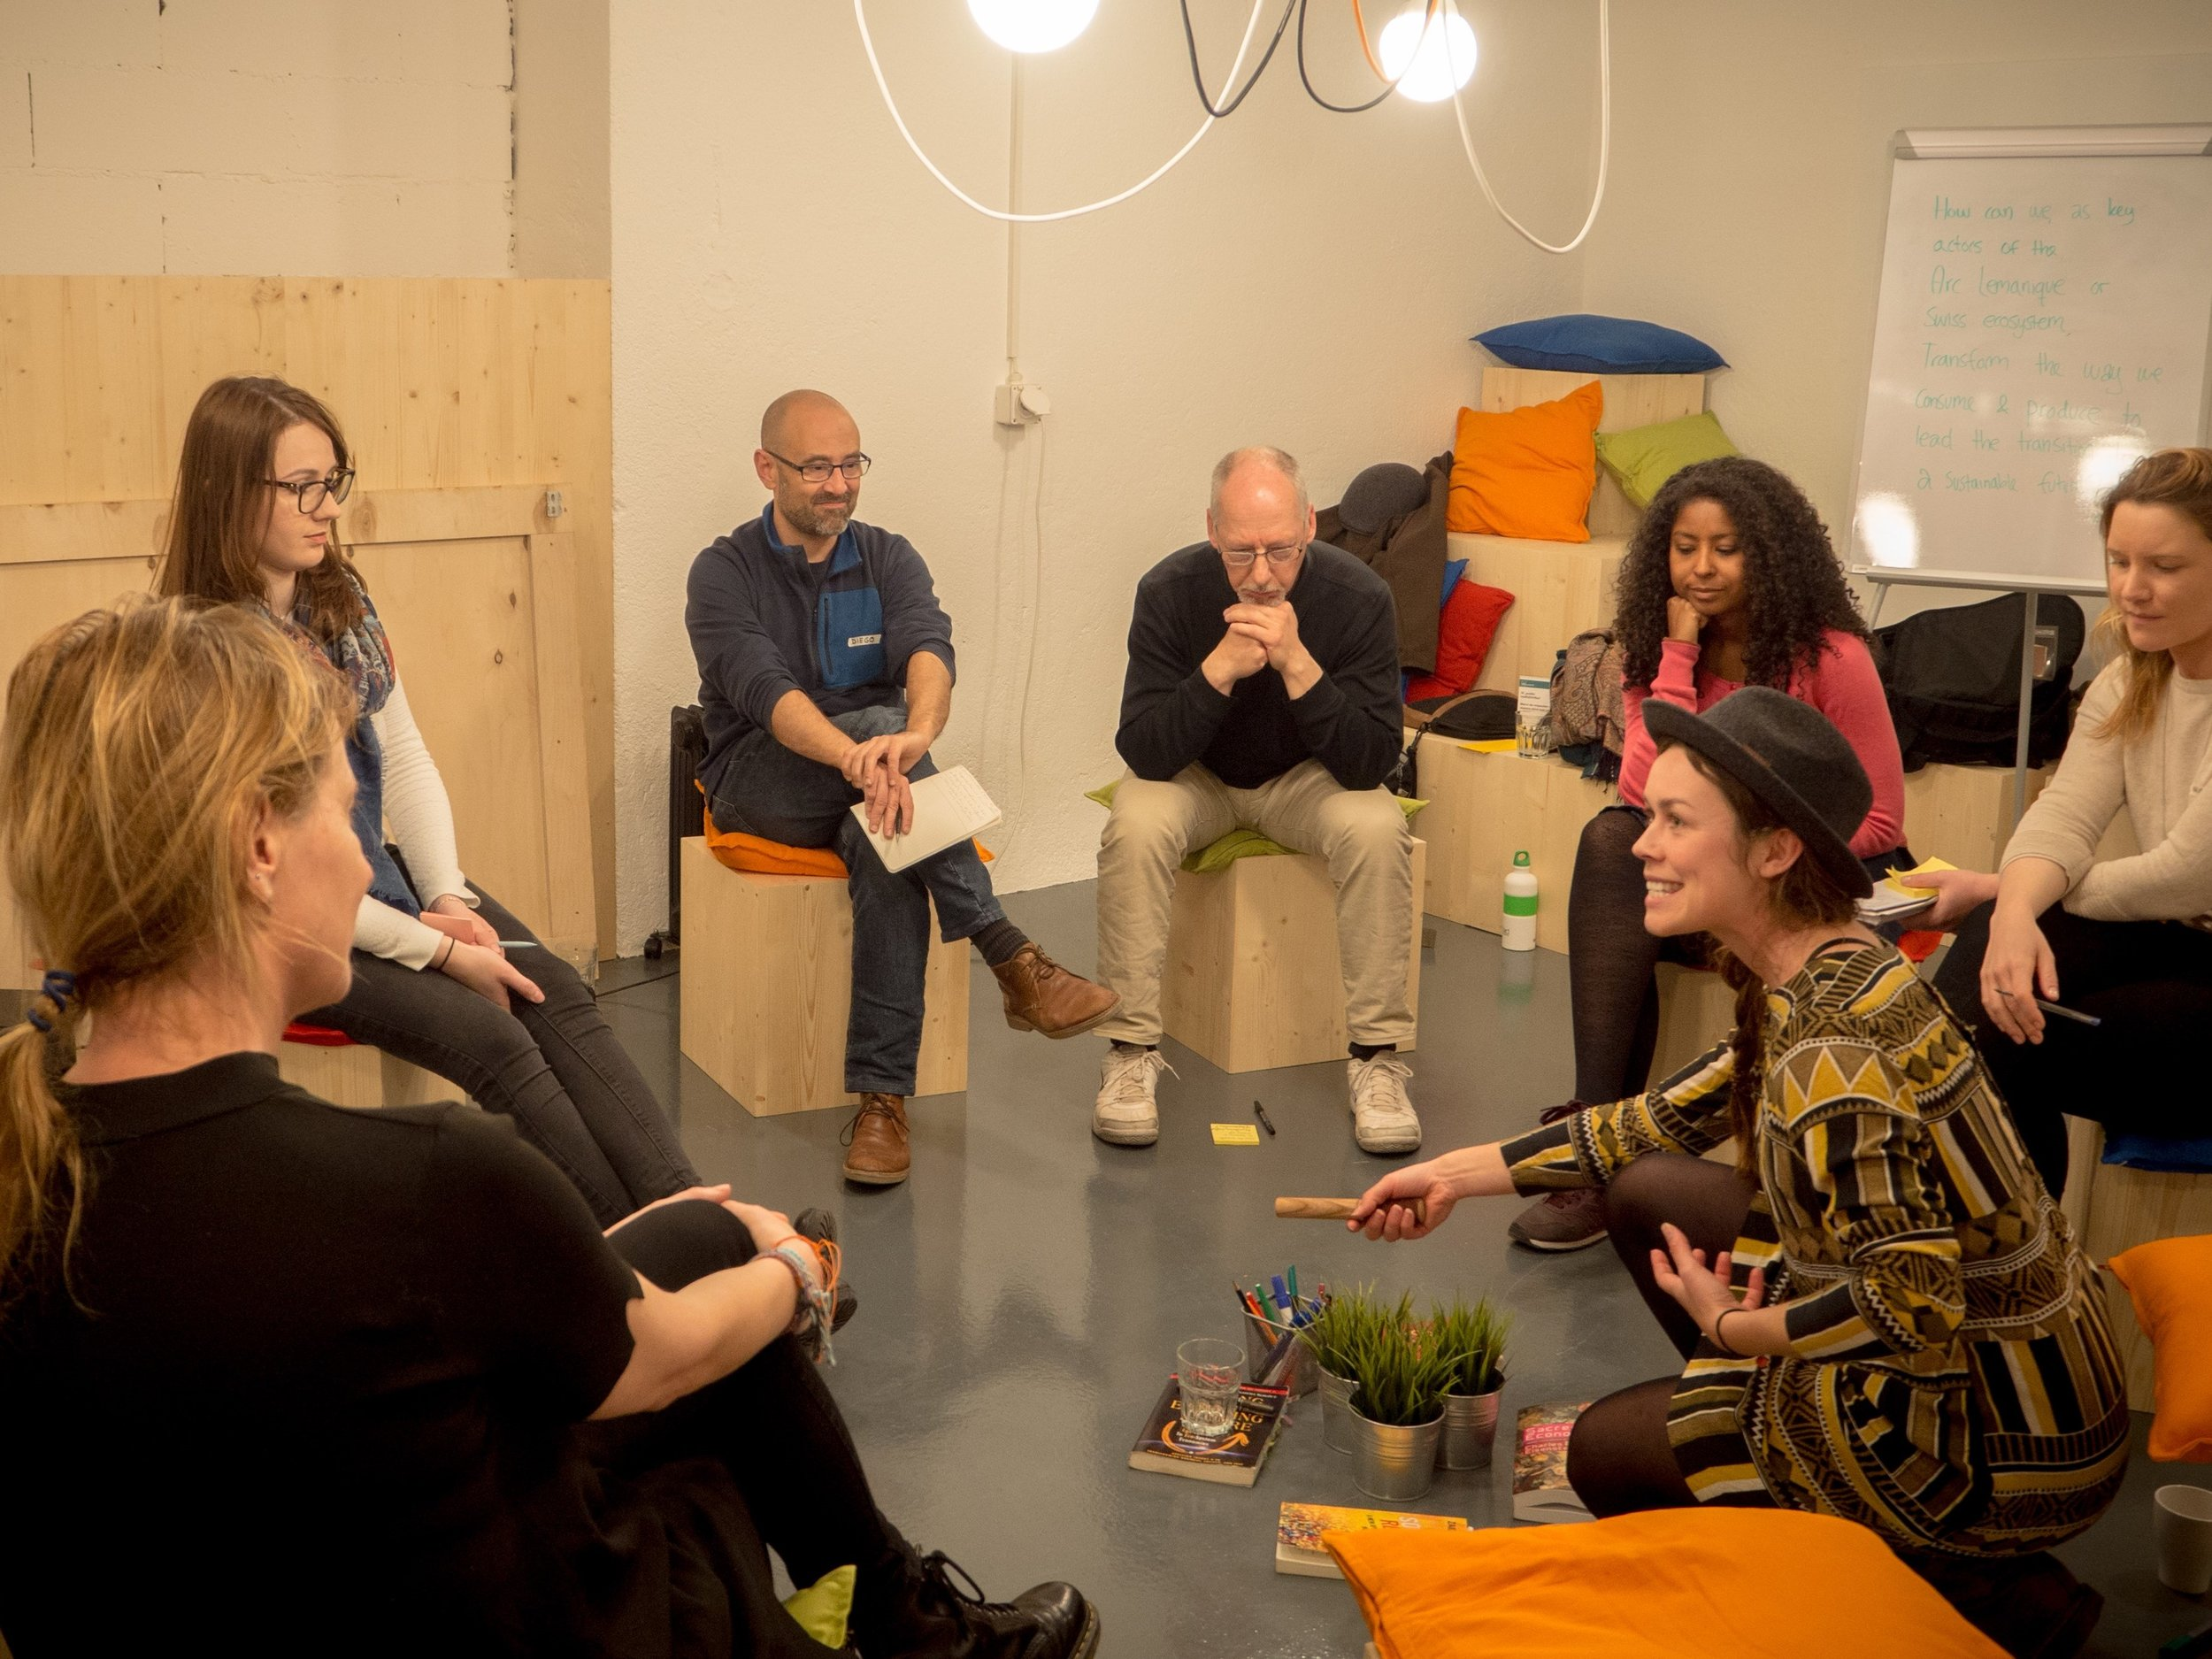 A group of people at a dialogue evening.